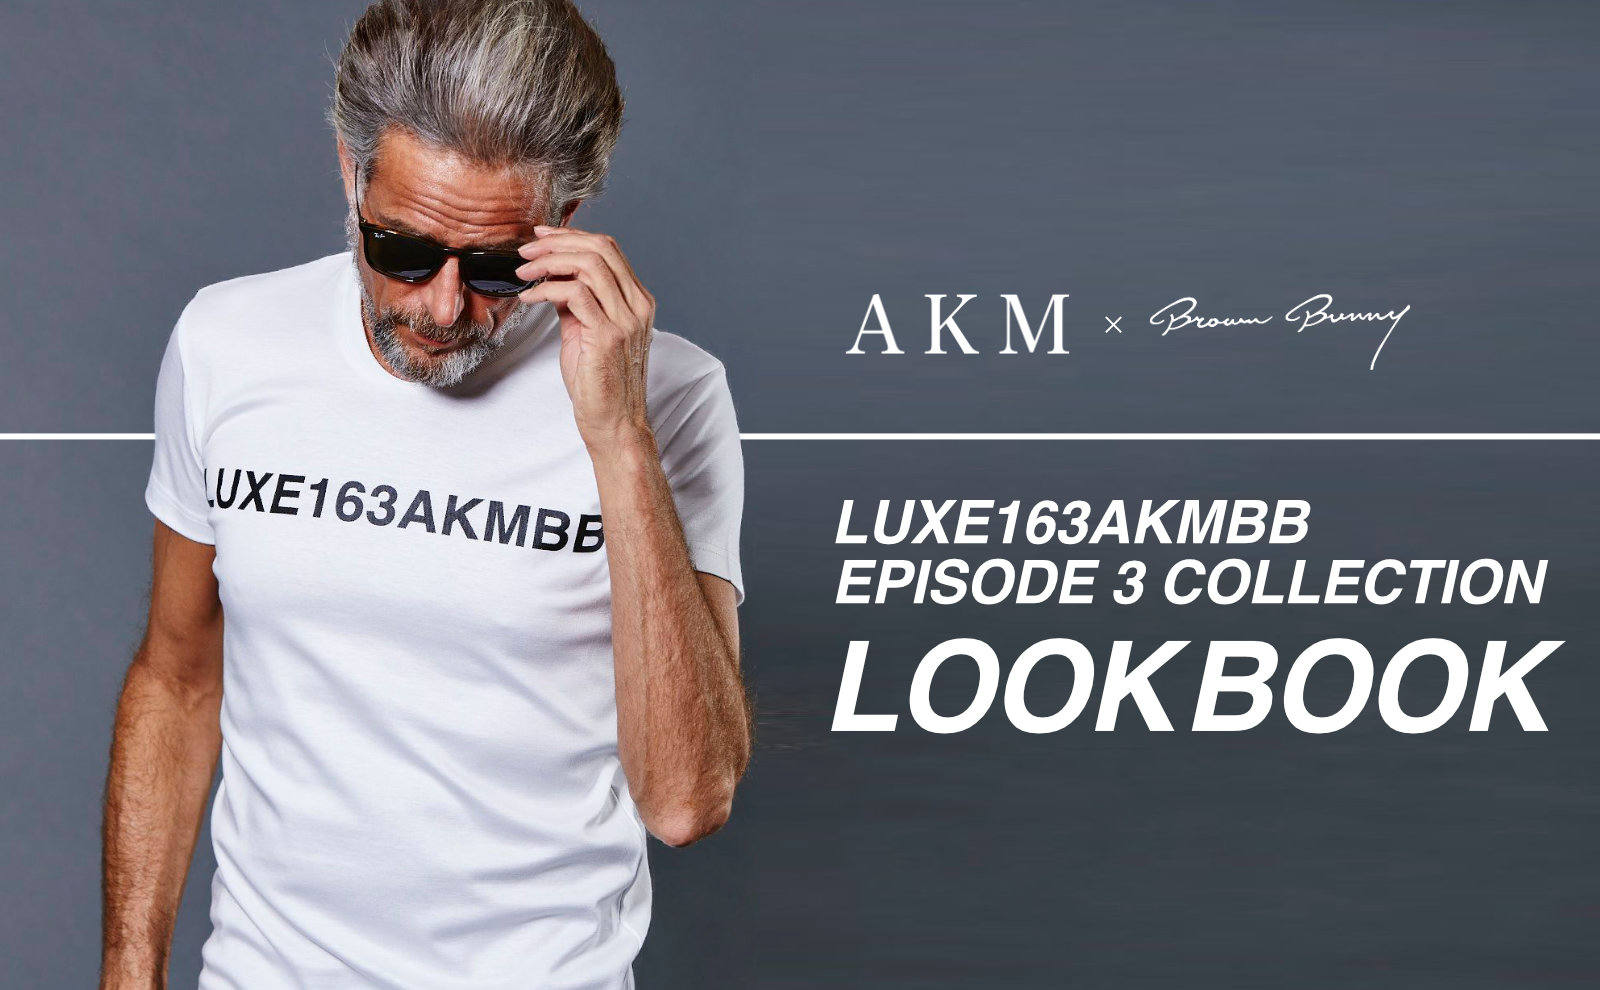 LUXE163AKMBB EPISODE 3 COLLECTION LOOKBOOK